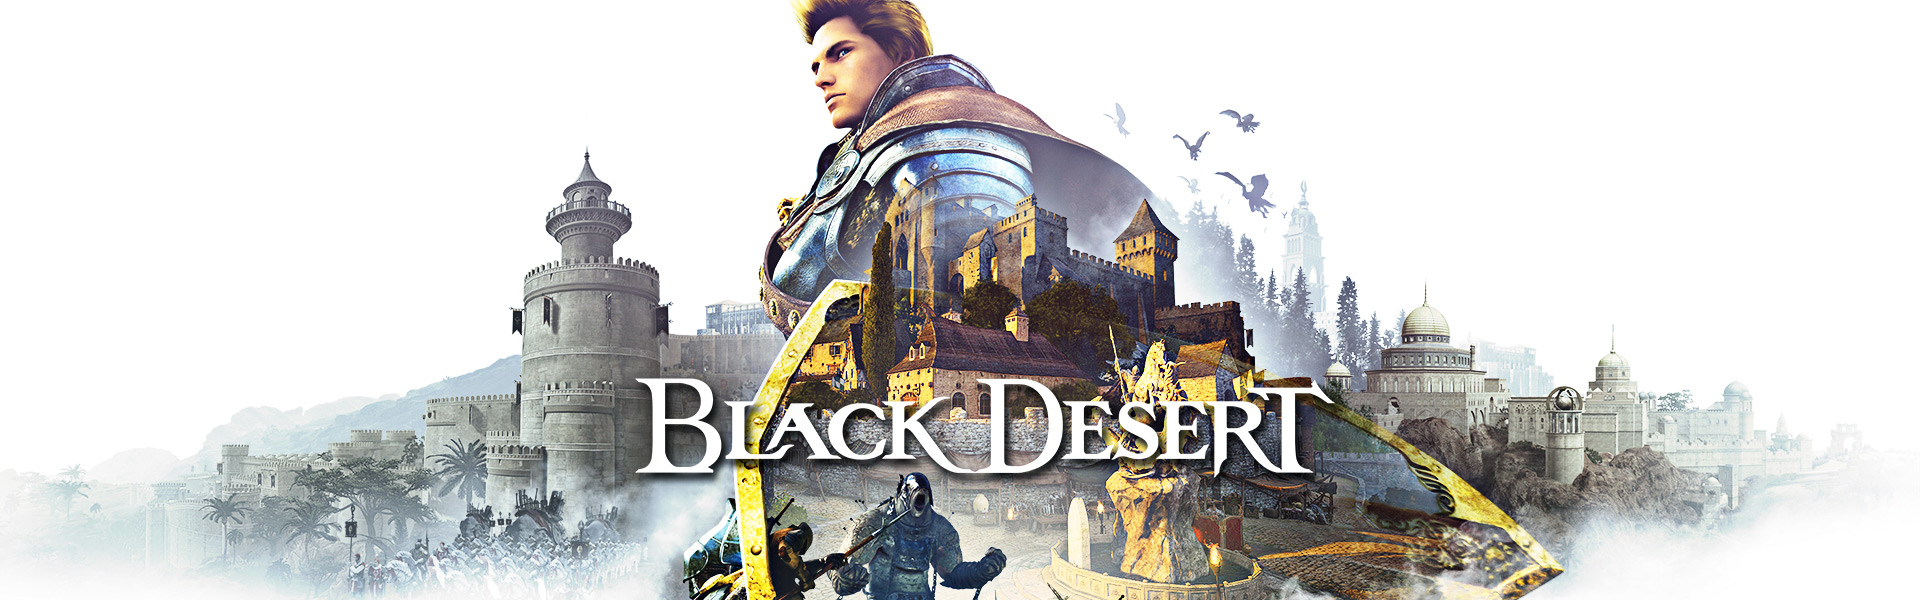 Black Desert The MMORPG